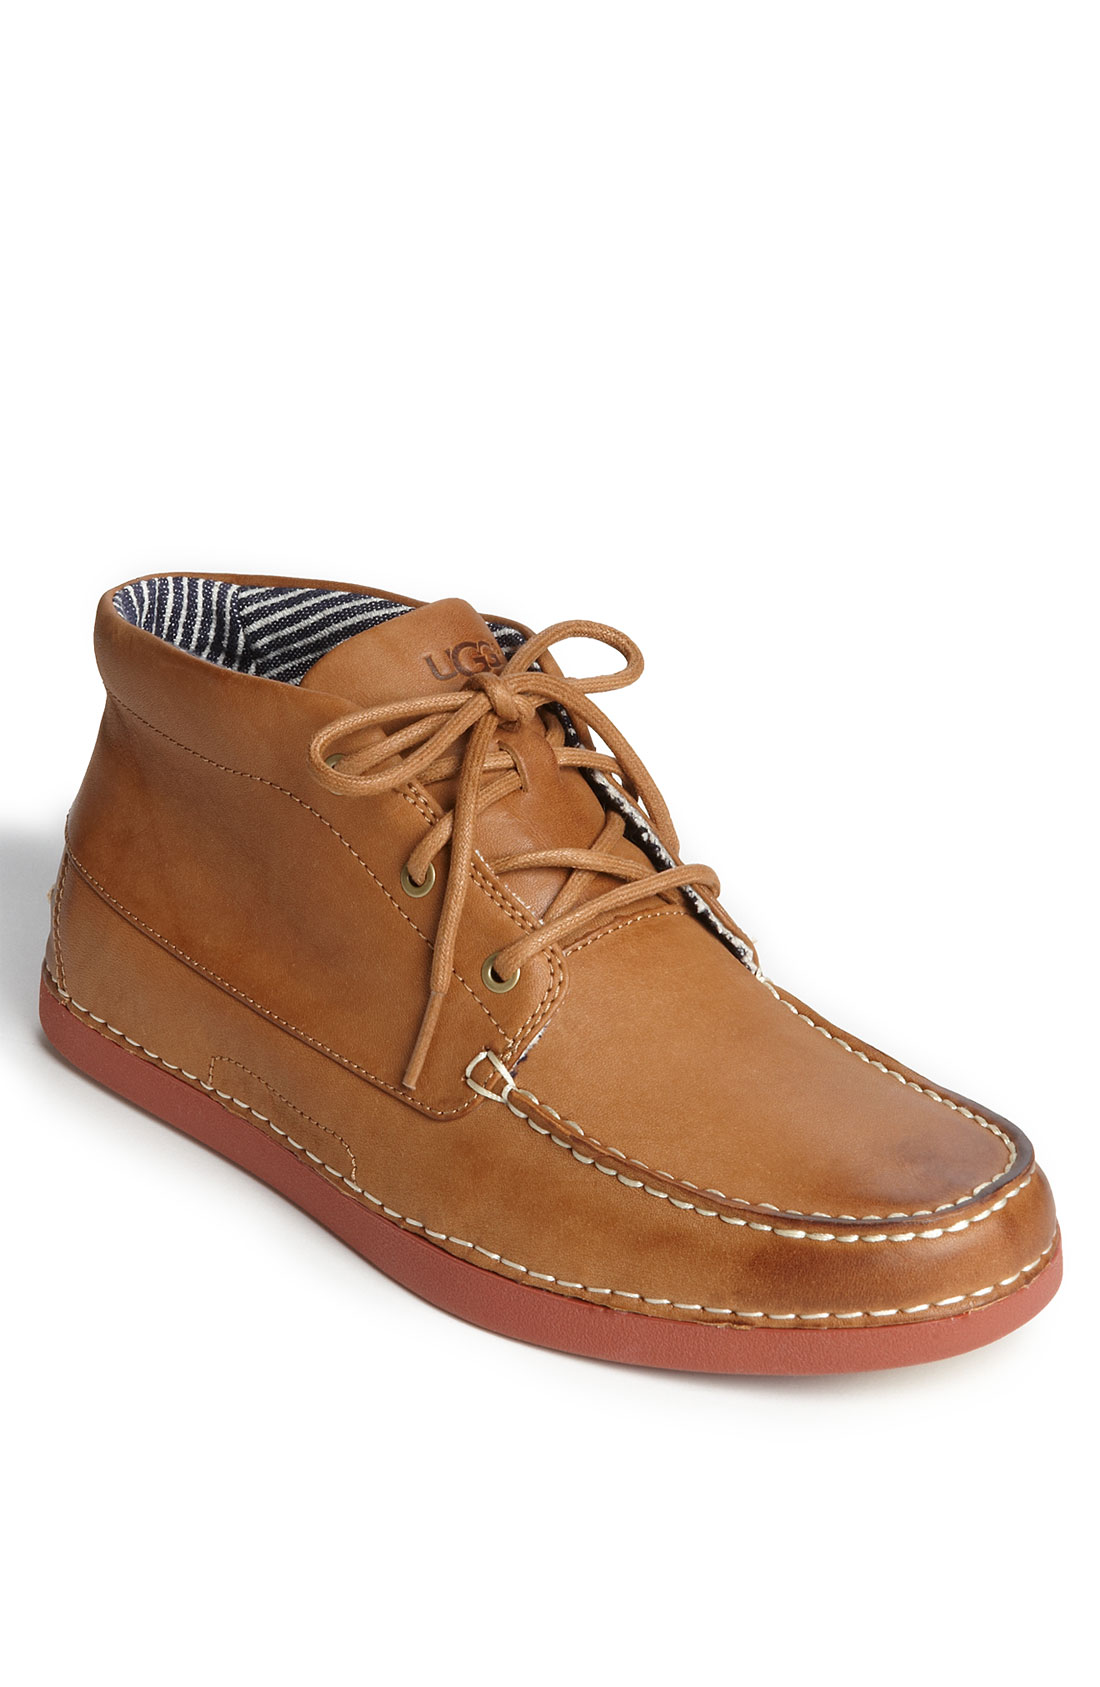 ugg kaldwell chukka boot in brown for chestnut lyst